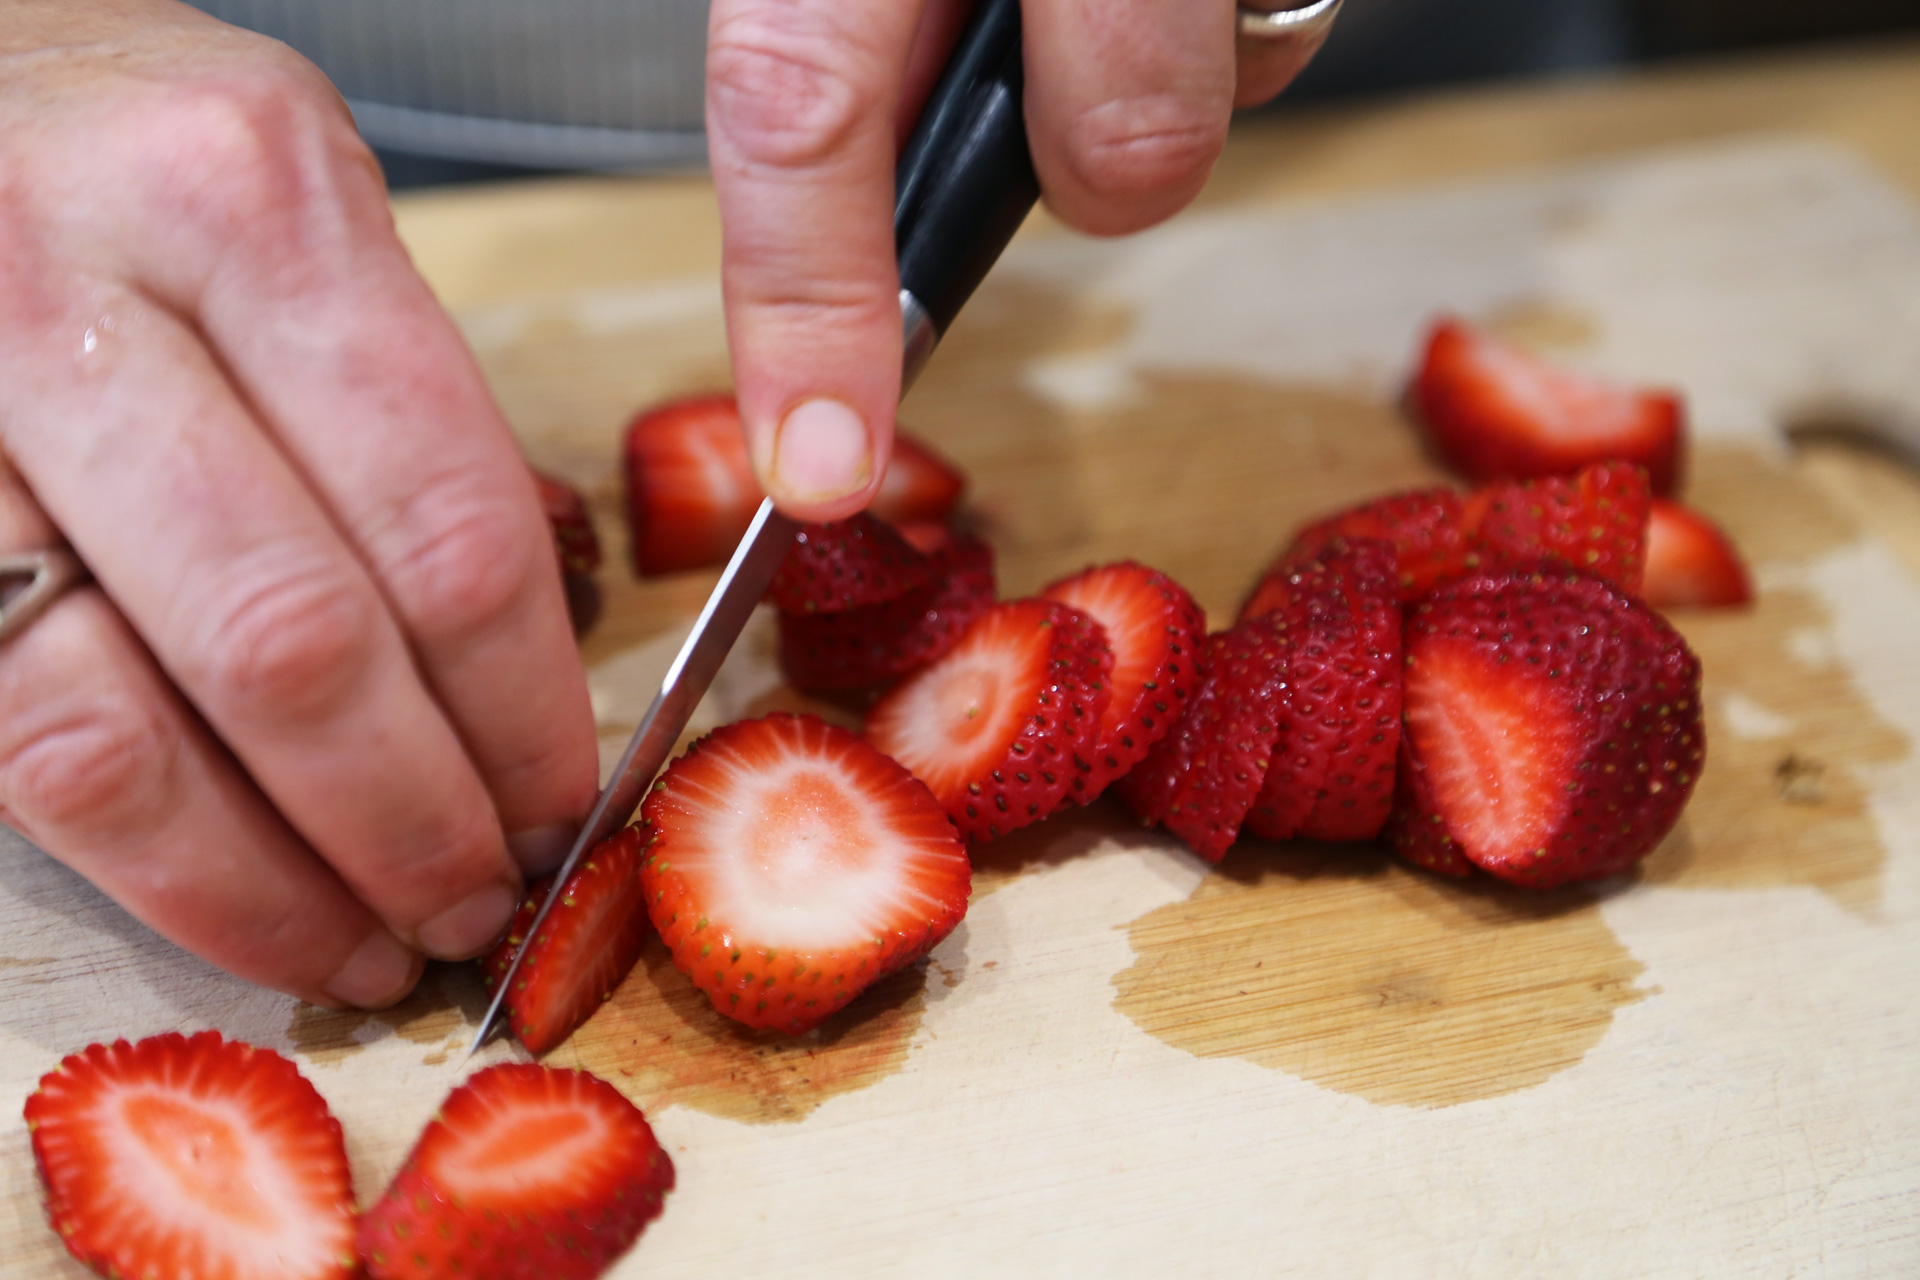 Strawberries, hulled and sliced